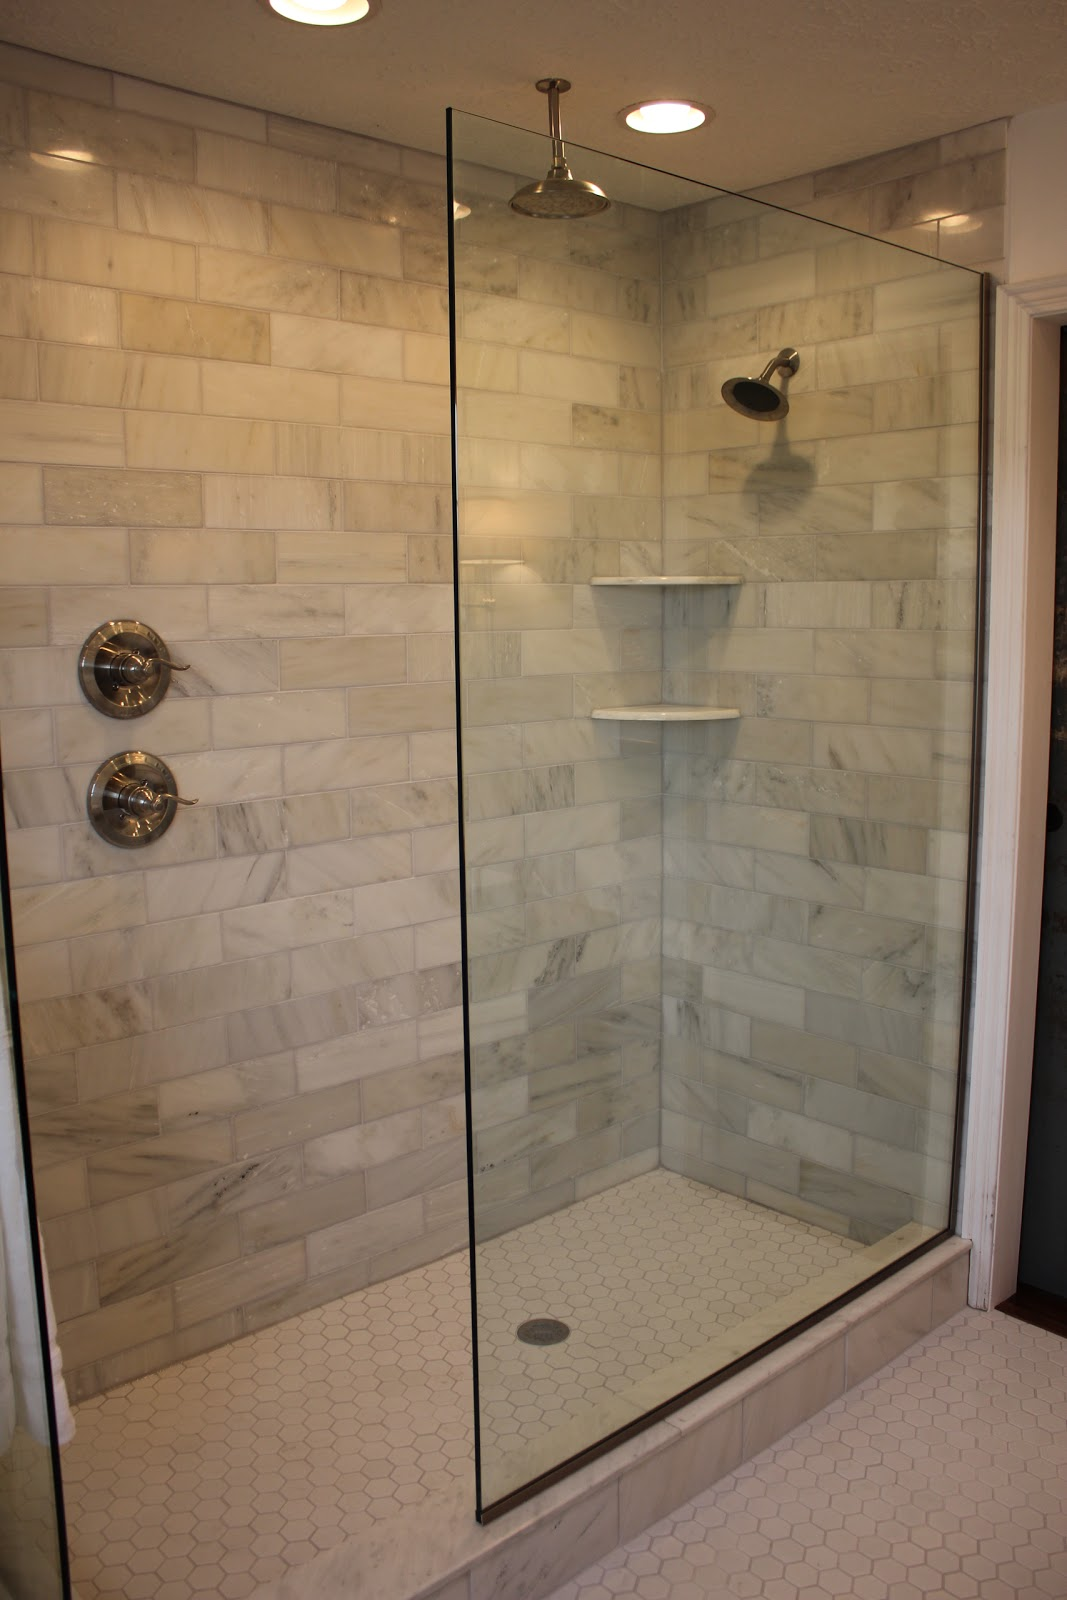 Design decor and remodel projects Bathroom shower tile designs